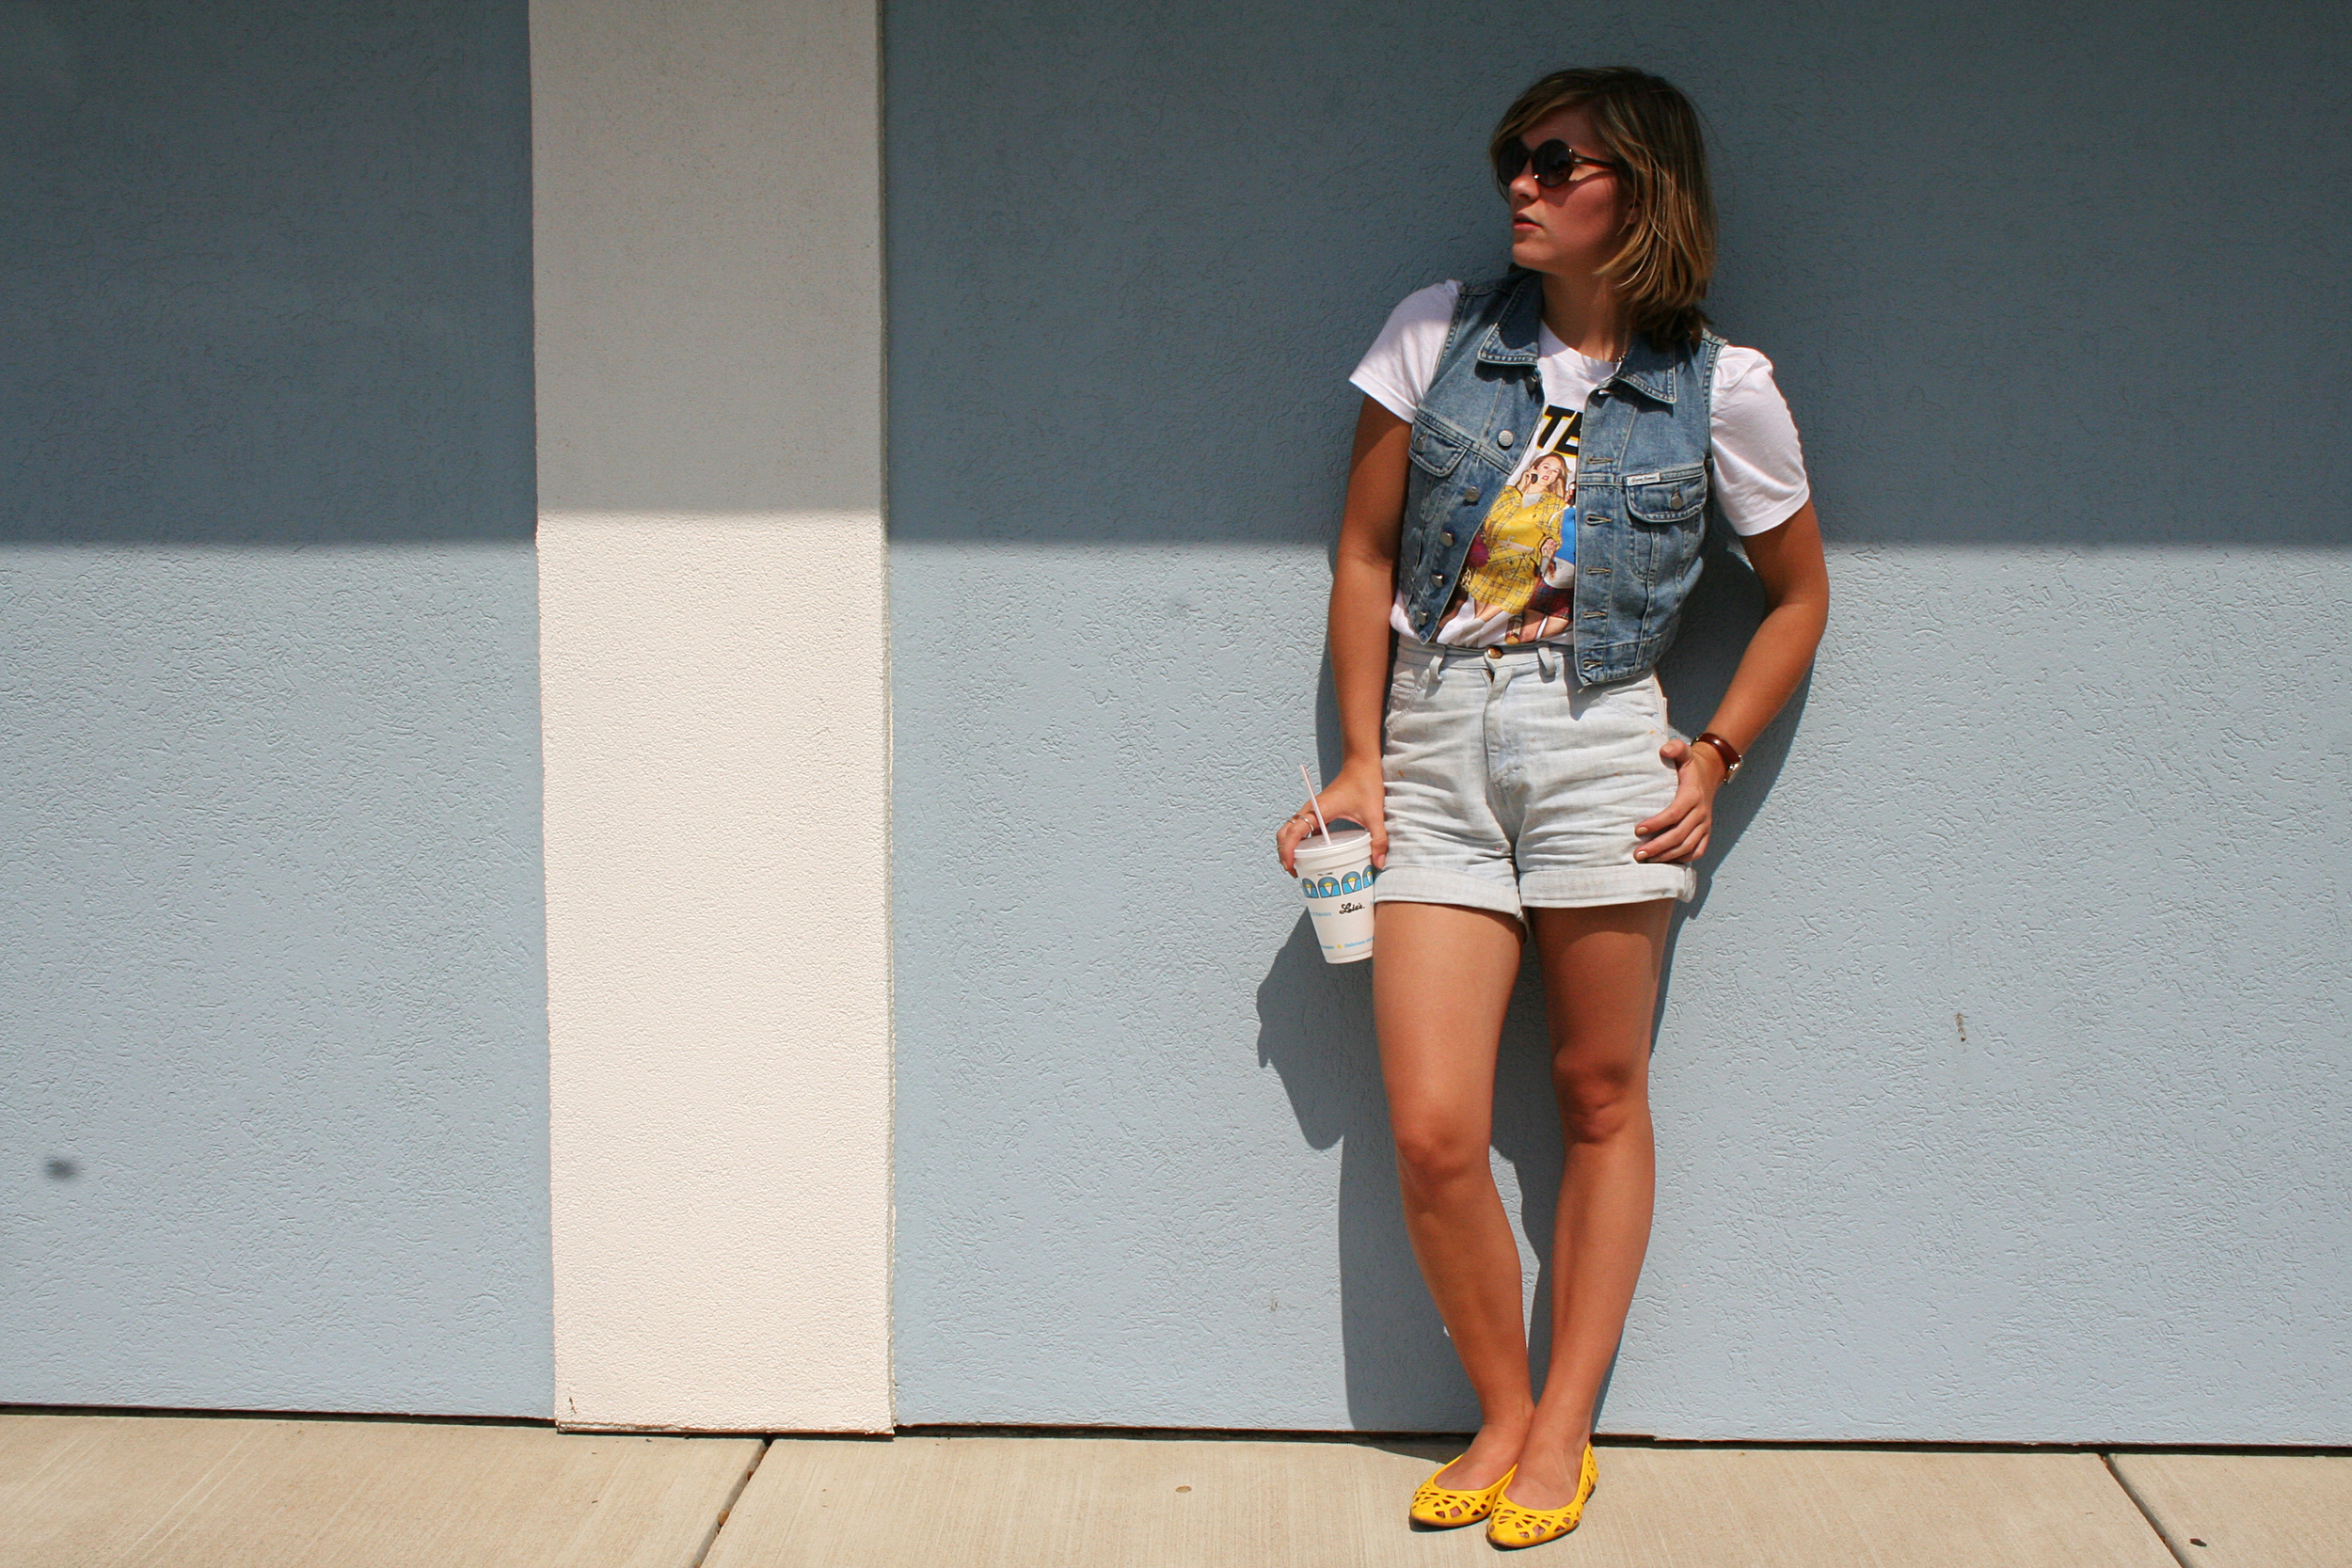 photo: Kierstin | vest: Guess, top: Urban Outfitters, shorts: Goodwill, shoes: Express, sunglasses: Target